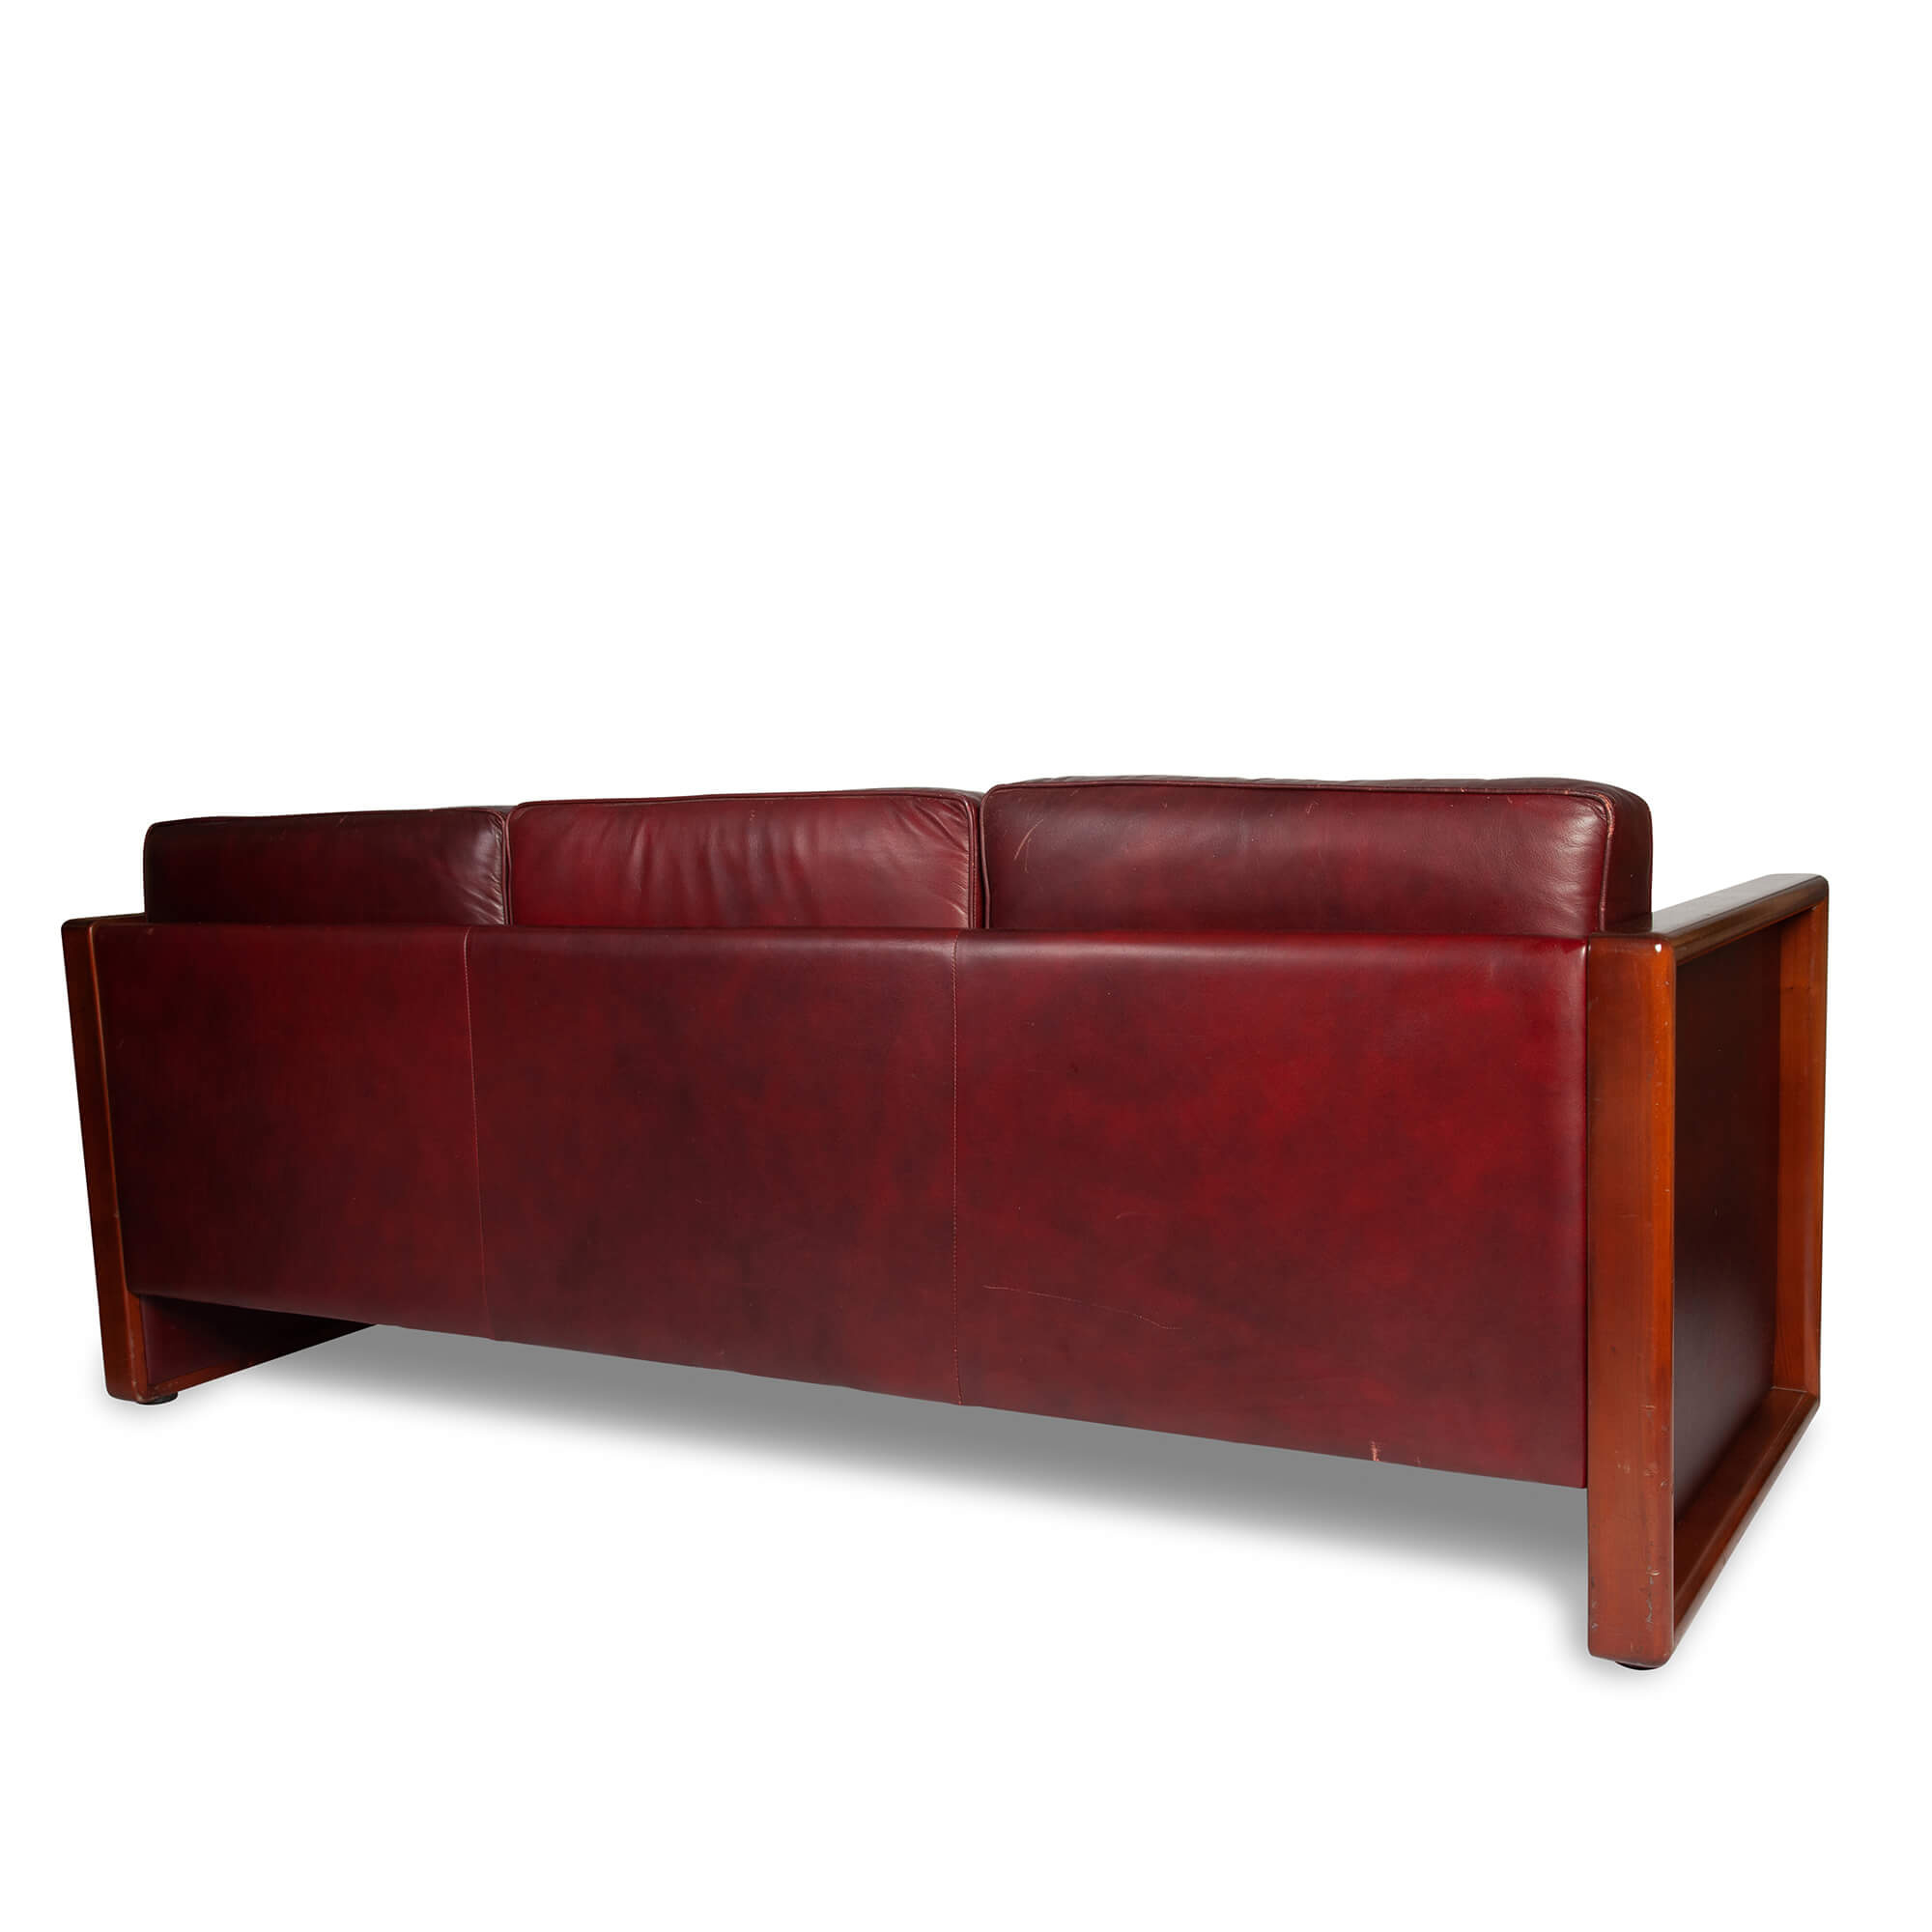 Vintage Walter Knoll Leather Sofa Inside Walter Leather Sofa Chairs (View 5 of 25)